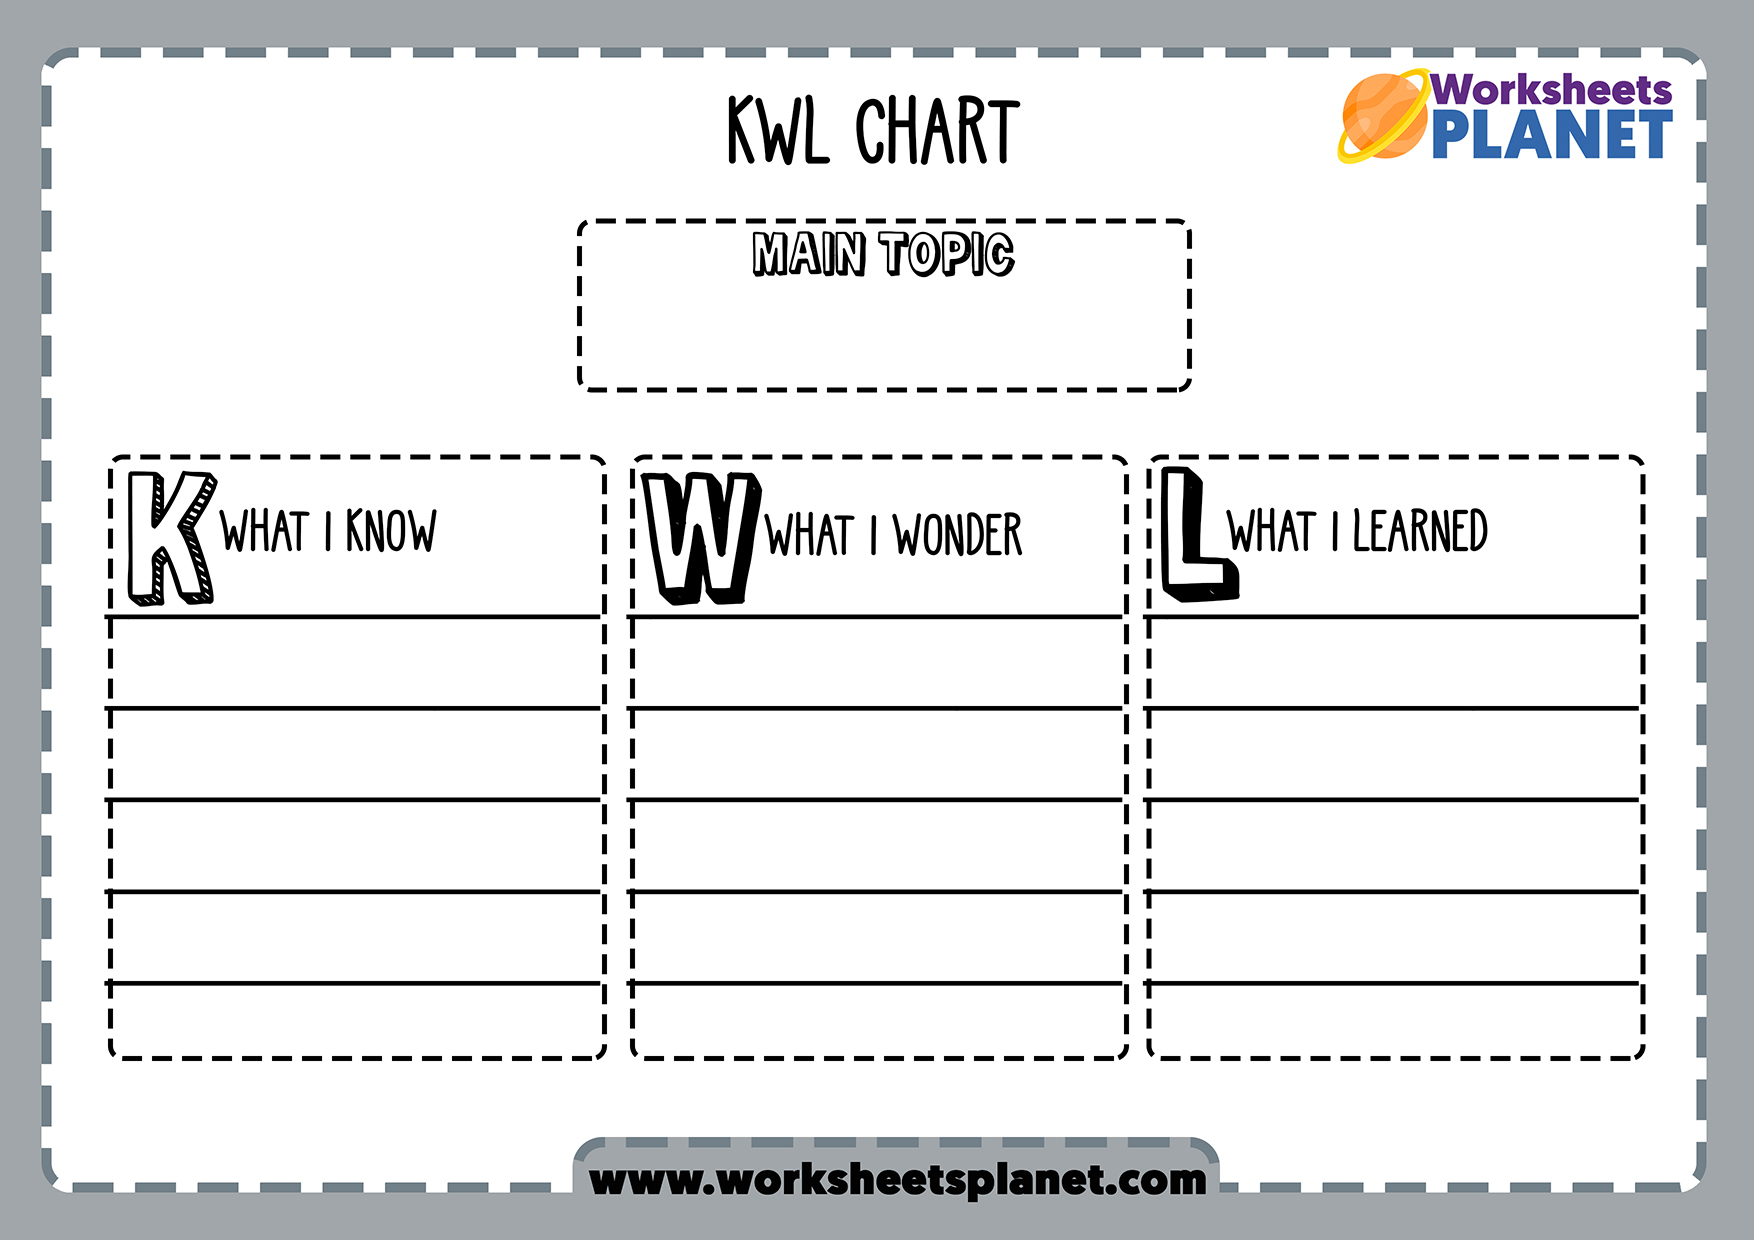 Thinking Skills Worksheets And Templates For Kids